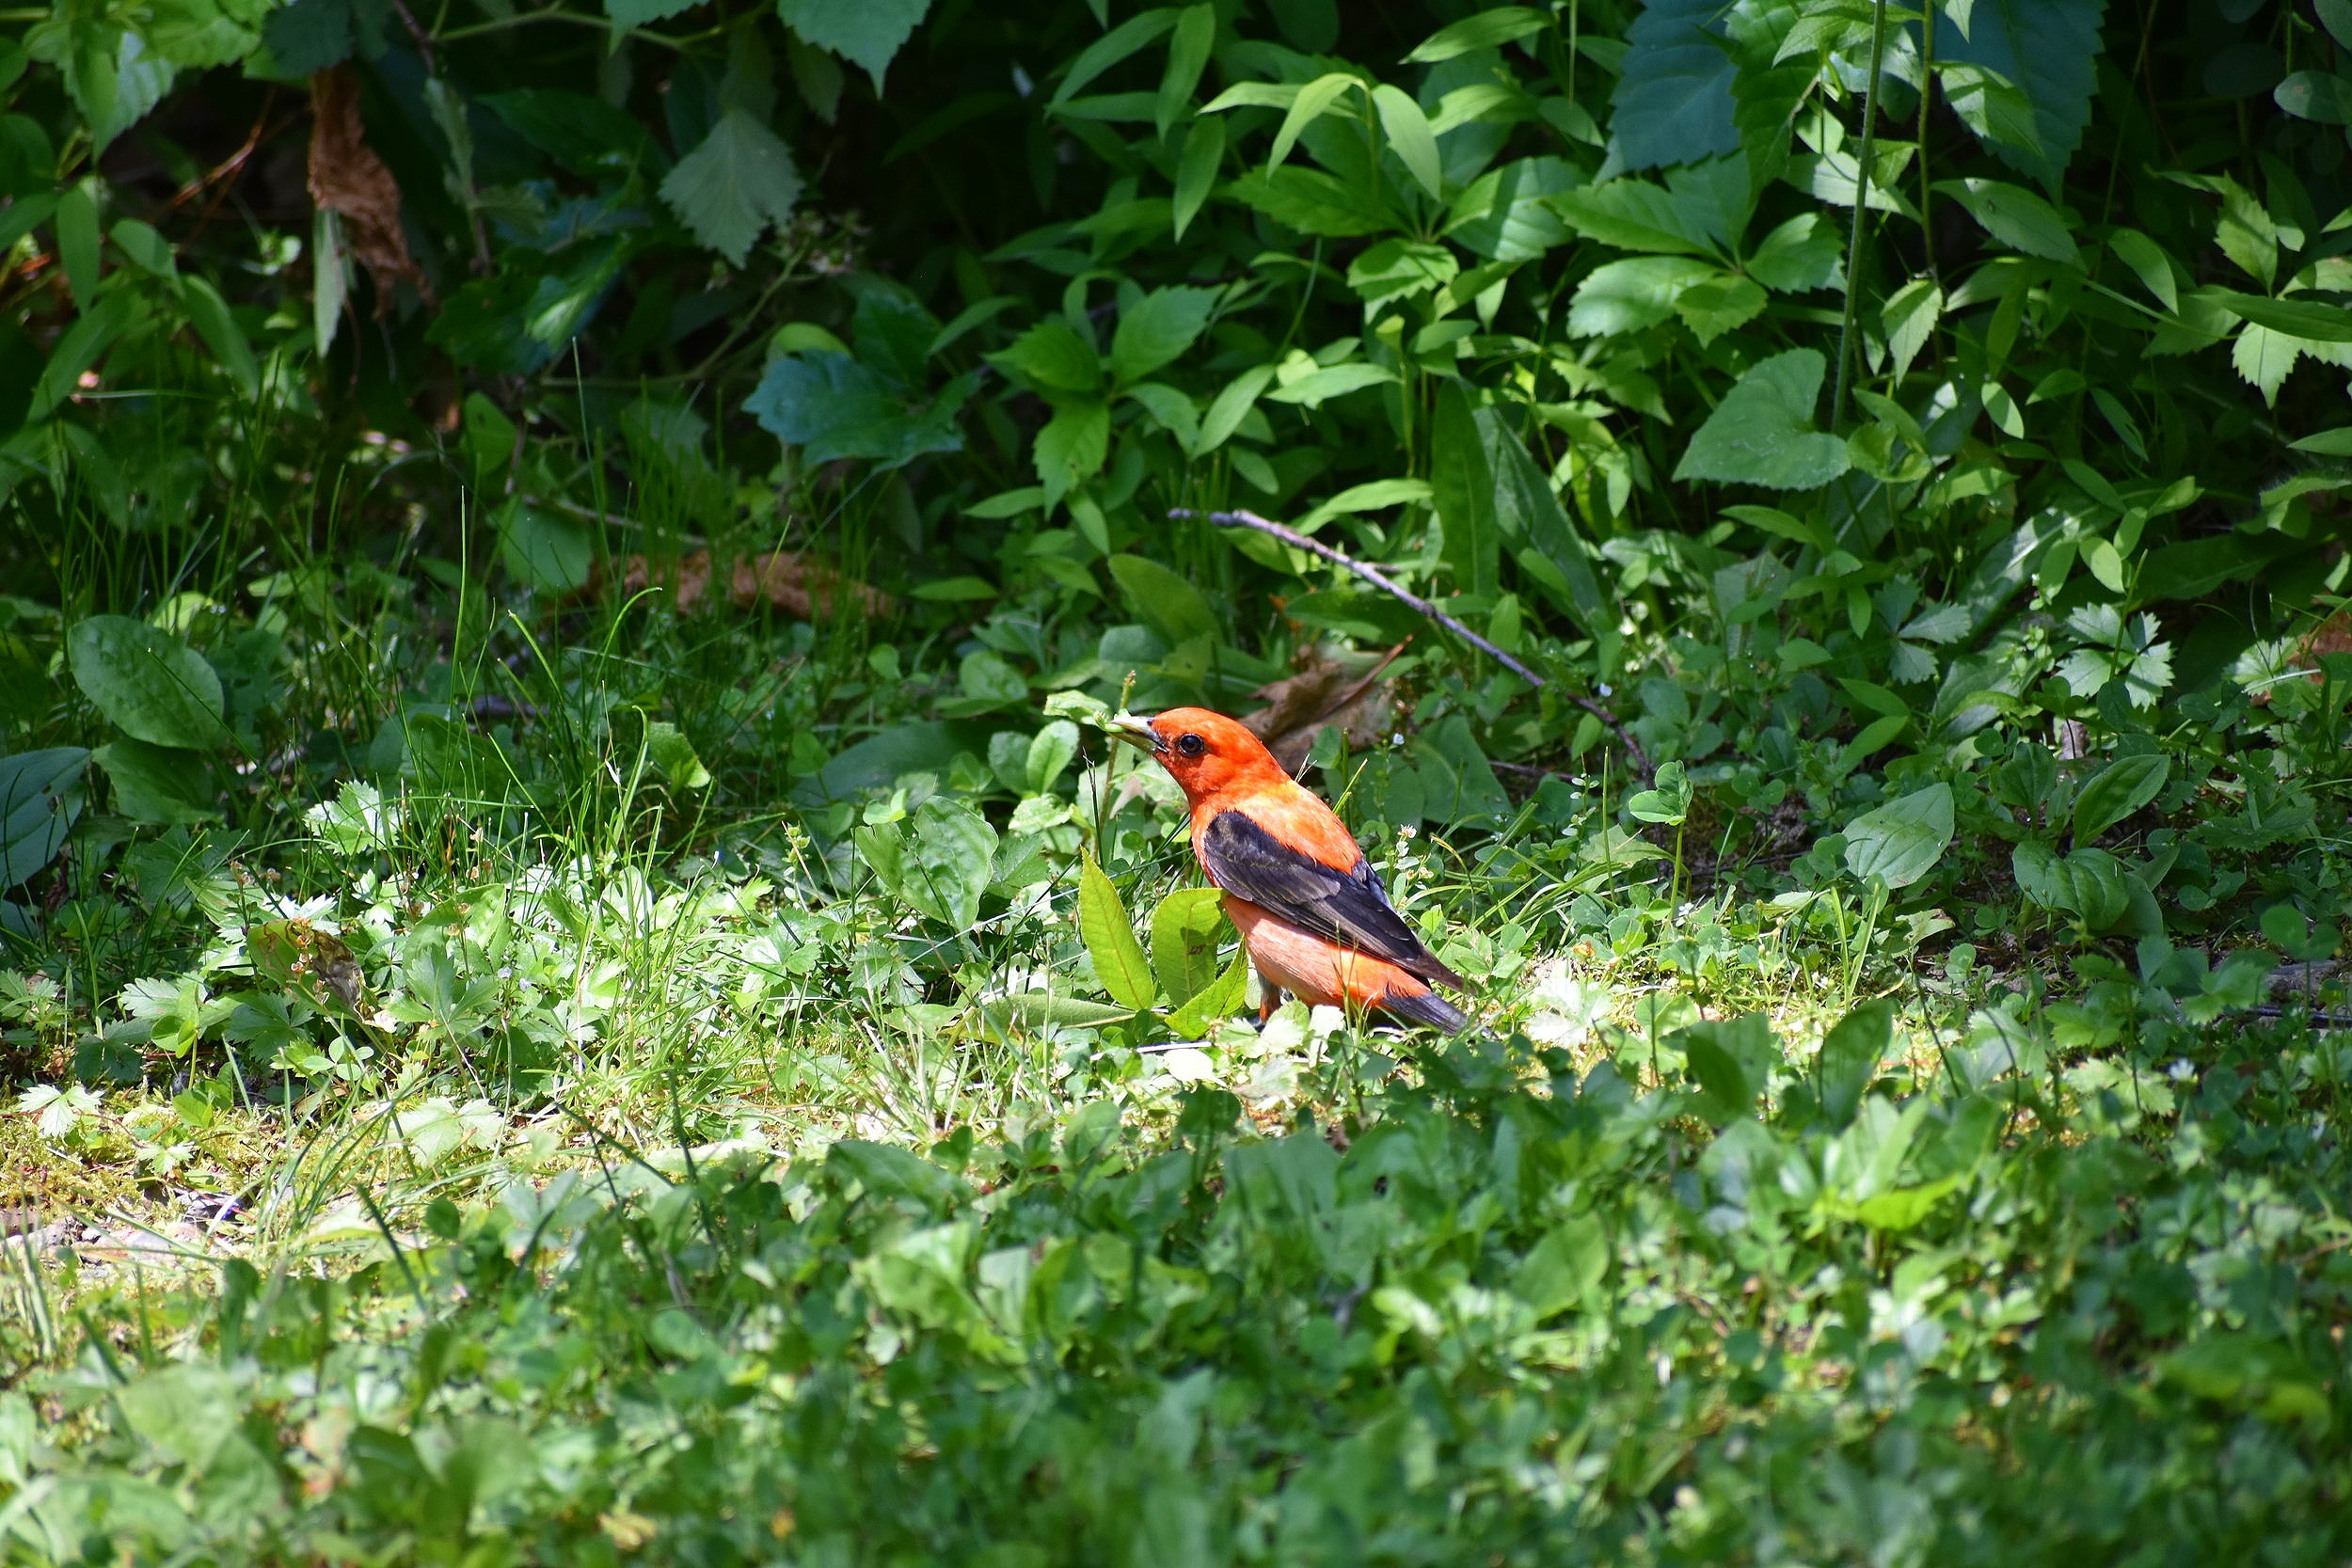 Scarlet Tanager feeding on the ground